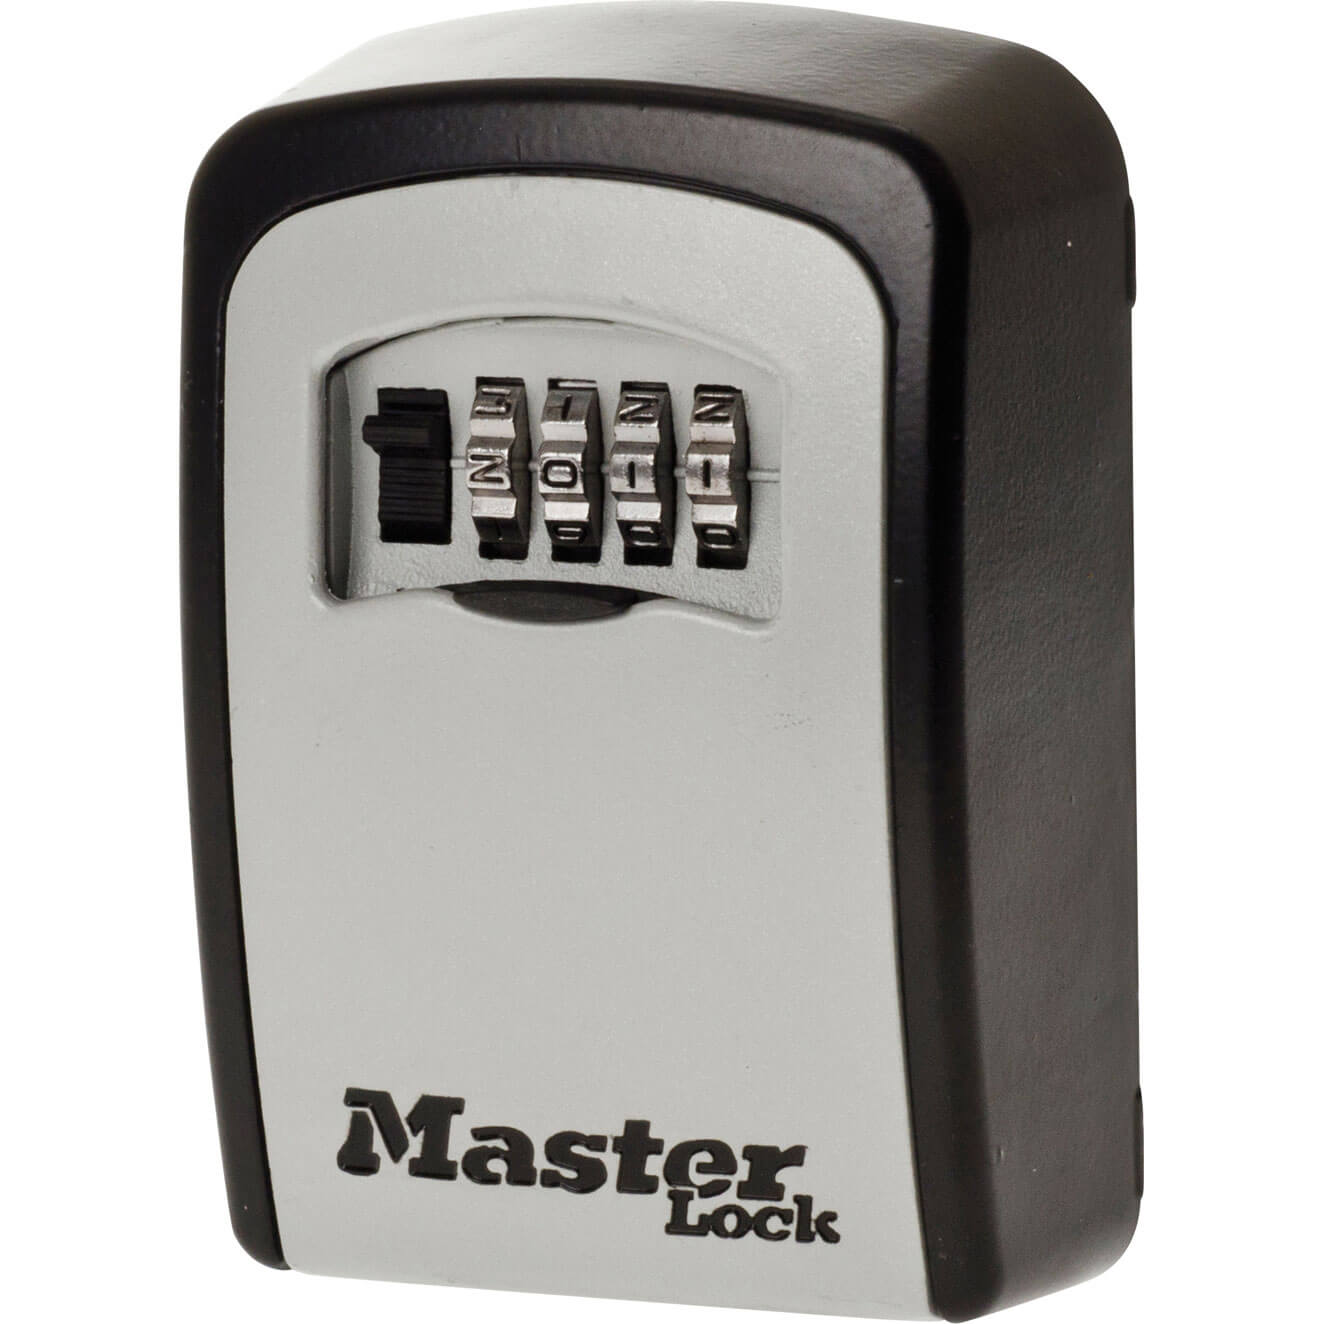 Masterlock Wall Mount Key Safe M